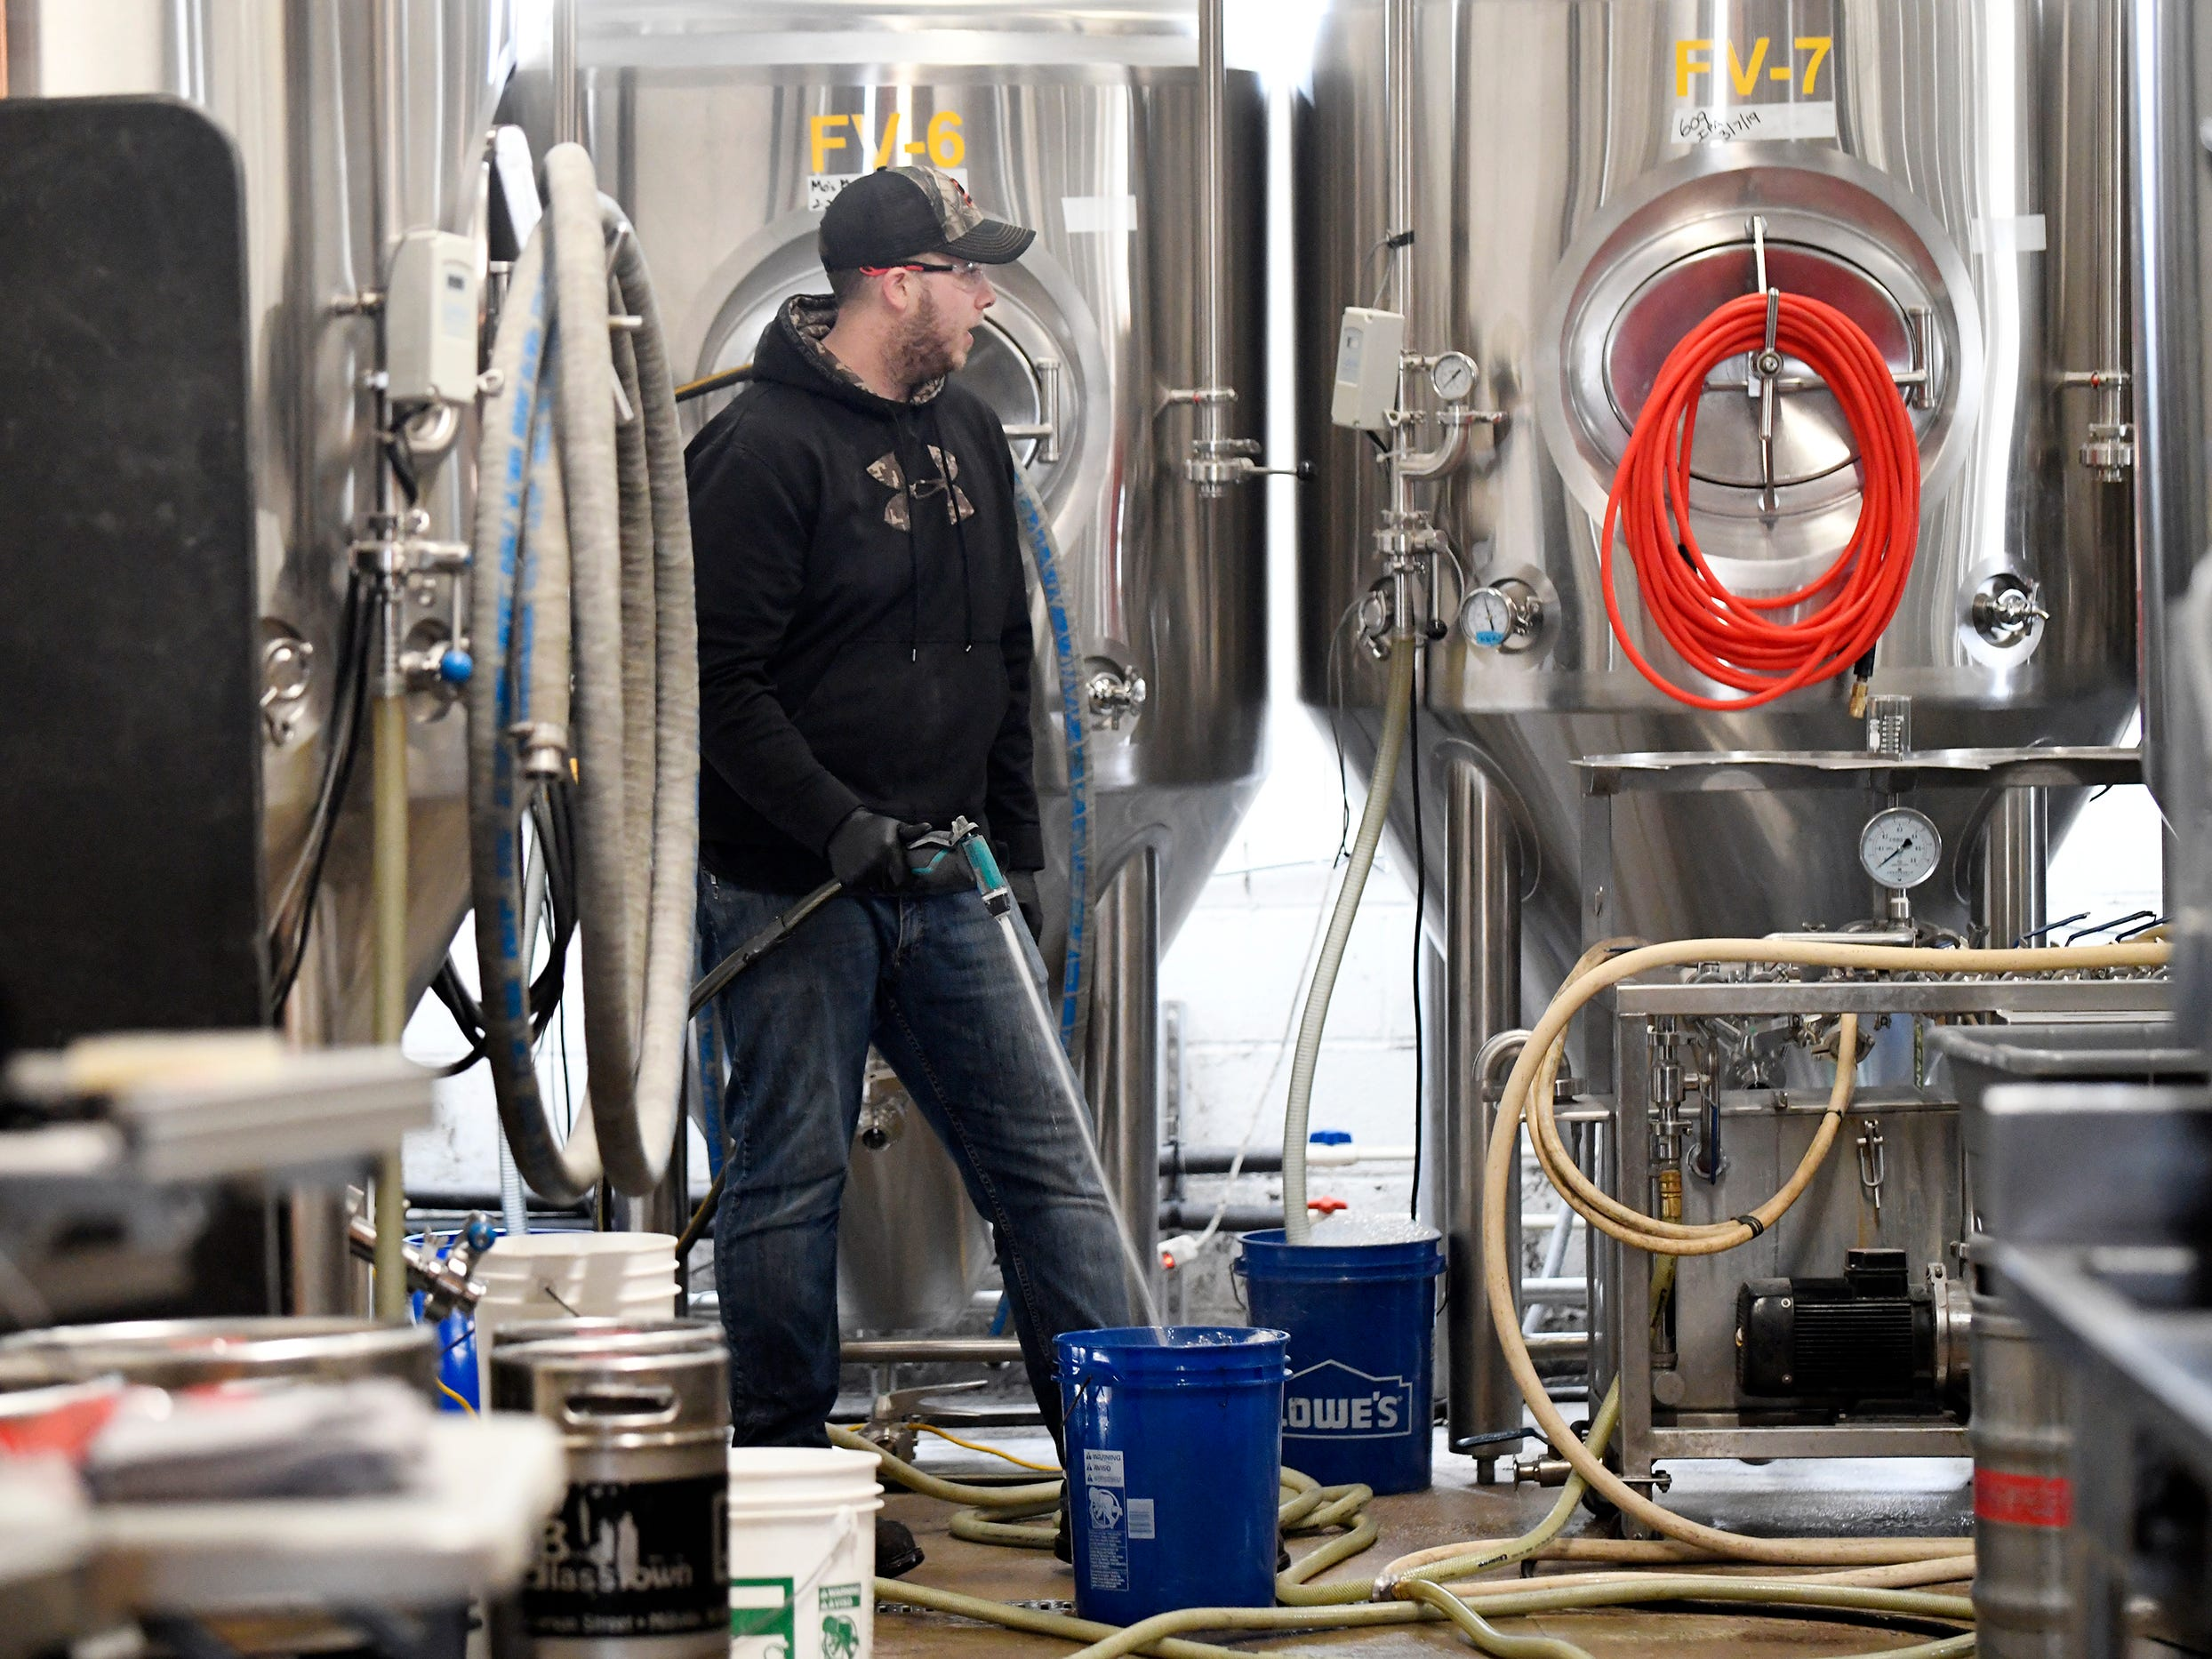 Staff at Glasstown Brewing Company in Millville clean up after making one of their signature beers on Friday, March 8, 2019.